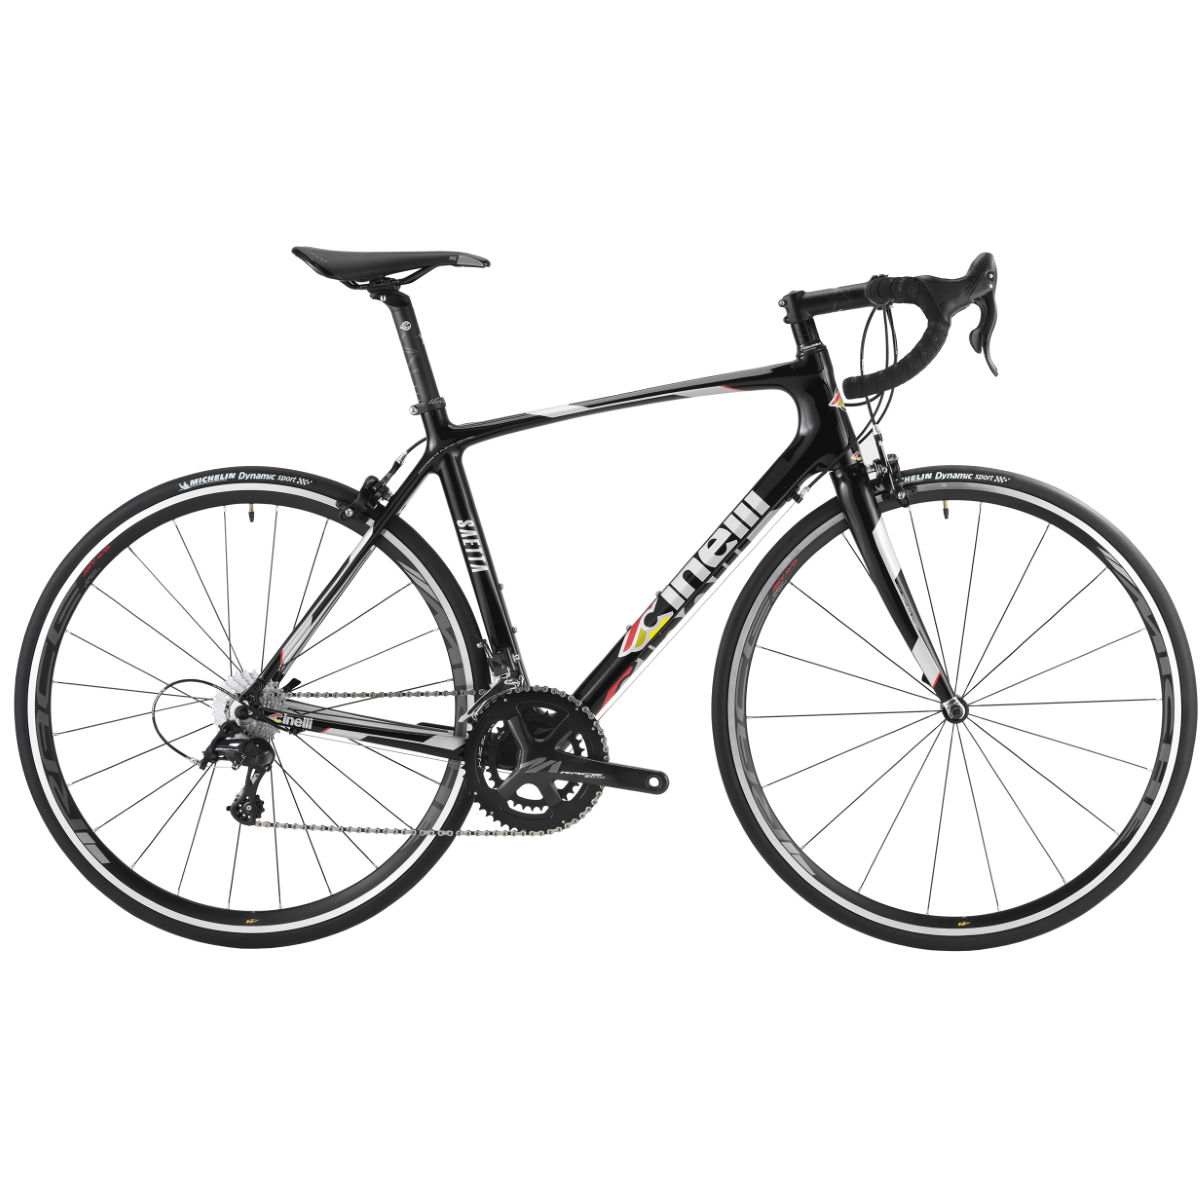 Vélo Cinelli Saetta Centaur - X Small Stock Bike Black Italo